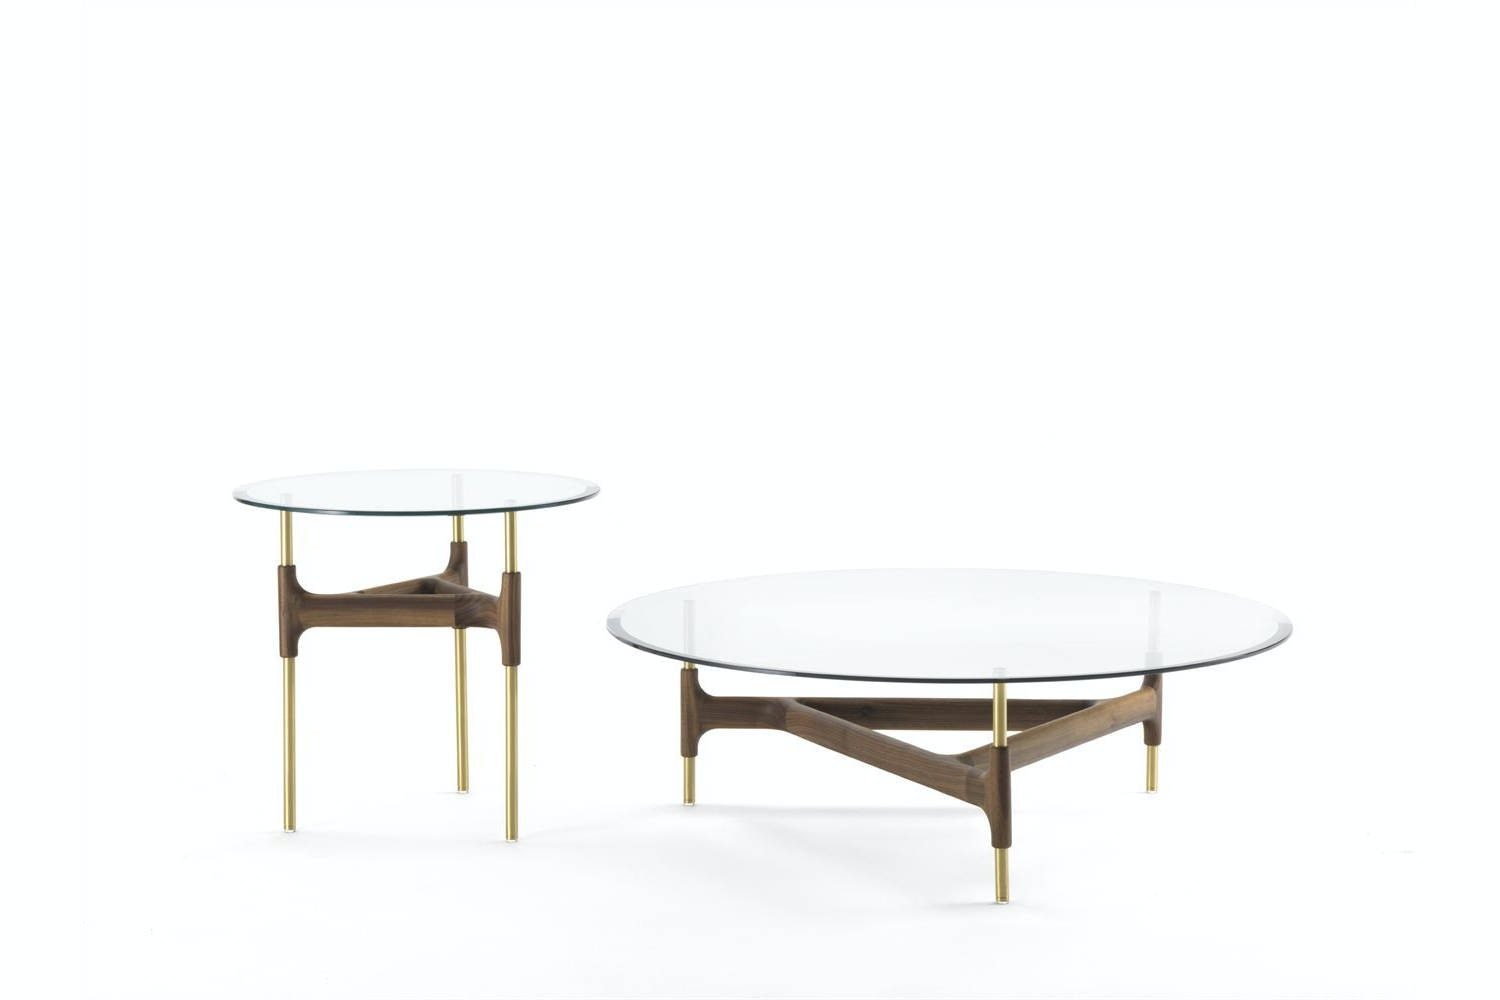 Joint Coffee Table by M. Marconato - T. Zappa for Porada